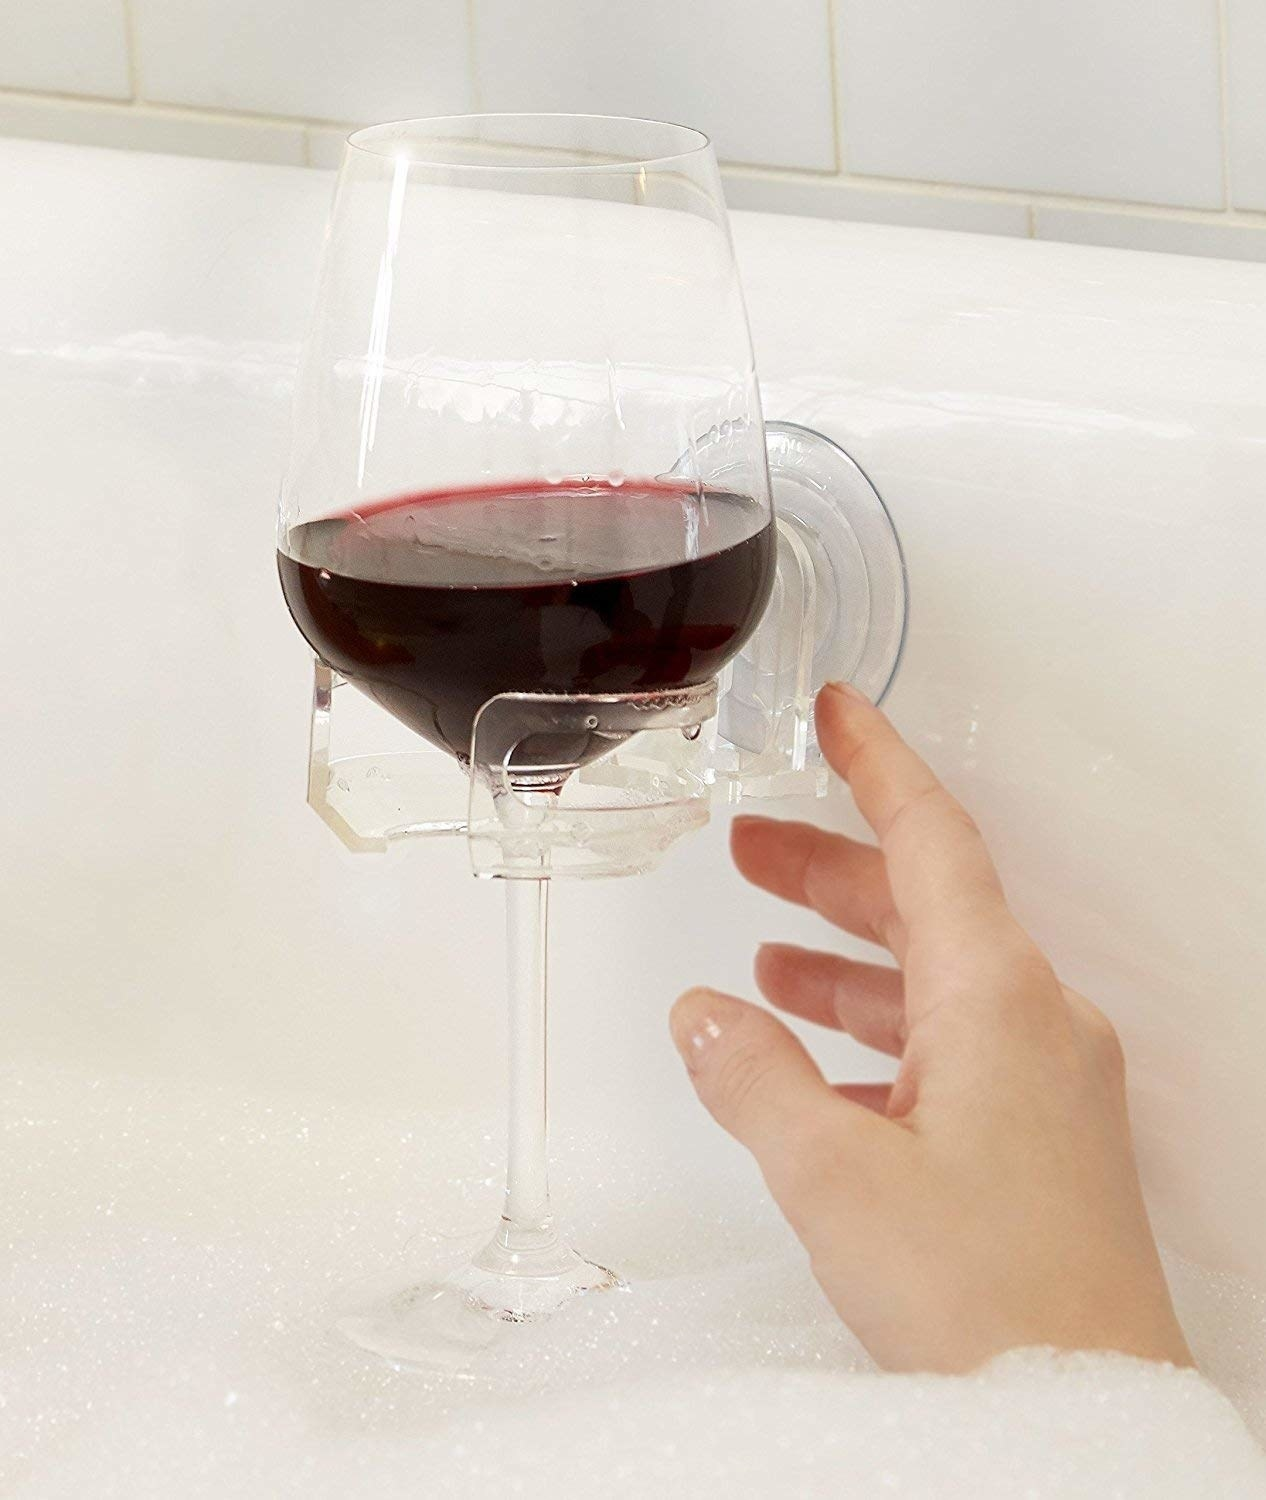 The wine glass holder stuck onto the side of the tub via a suction cup